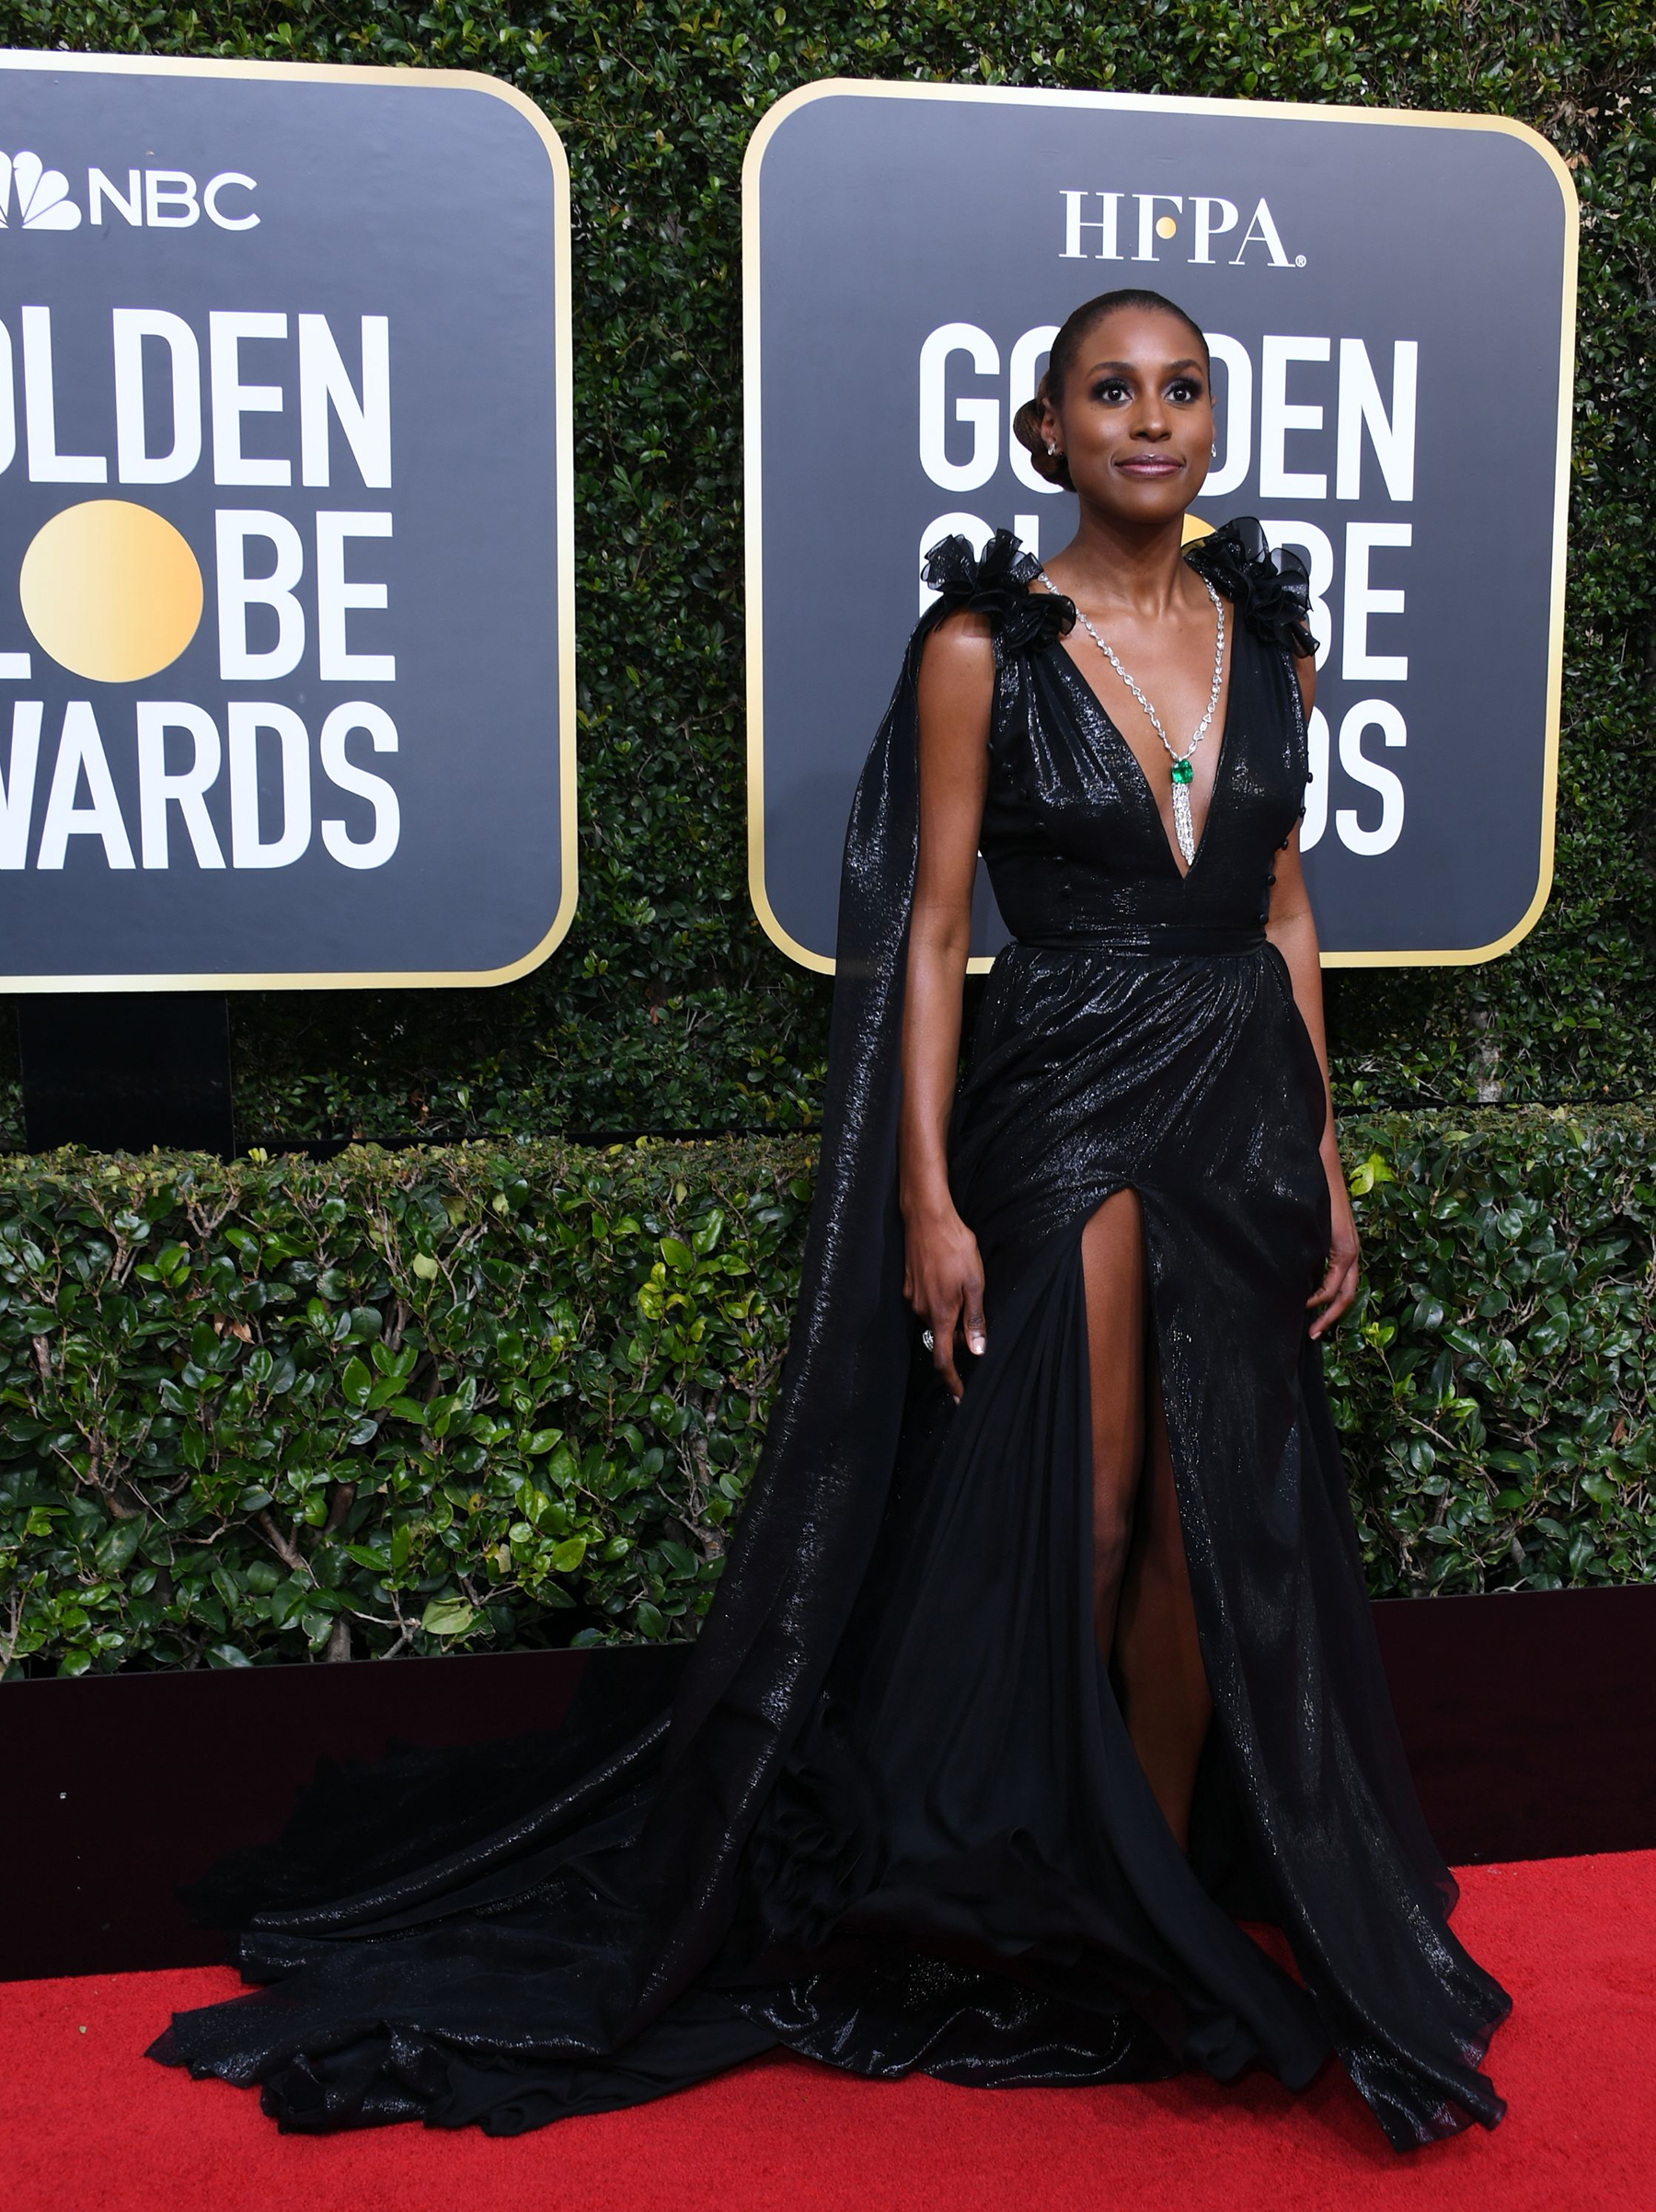 Issa Rae arrives for the 75th Golden Globe Awards on January 7, 2018, in Beverly Hills, California.